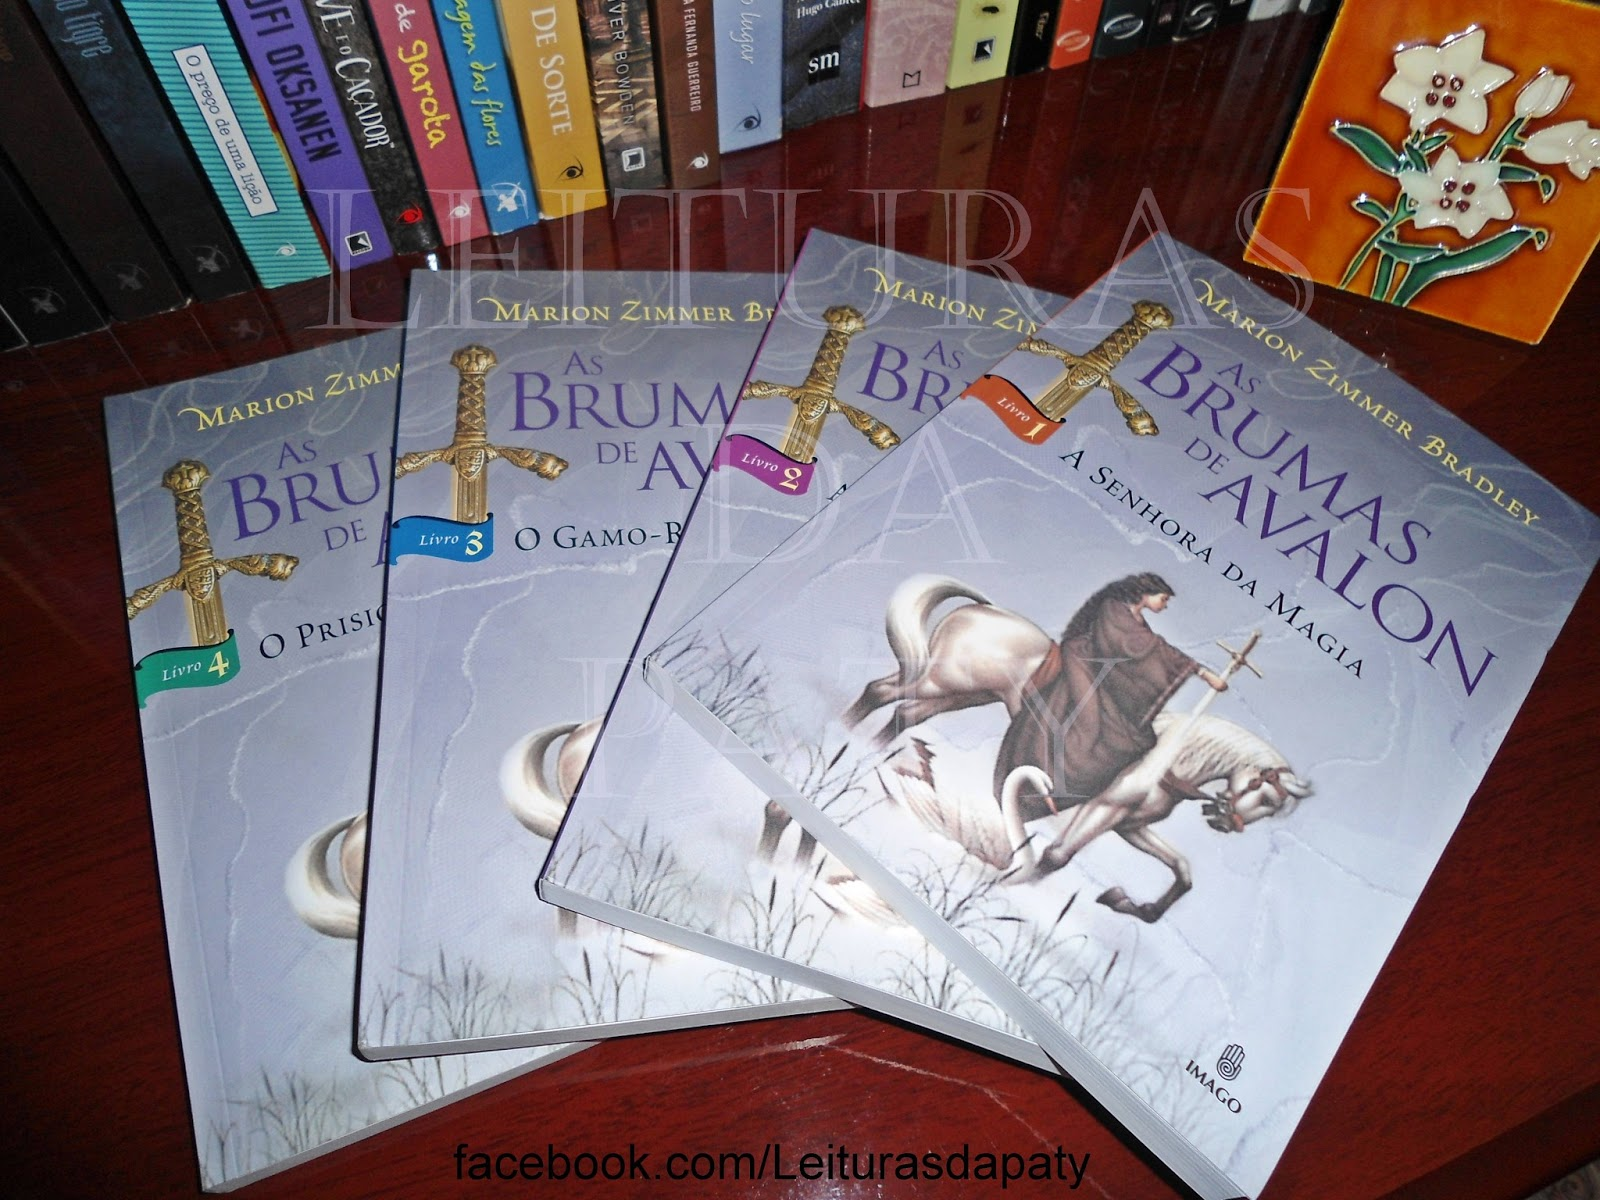 Livro As Brumas de Avalon -  Marion Z. Bradley - Blog Leituras da Paty